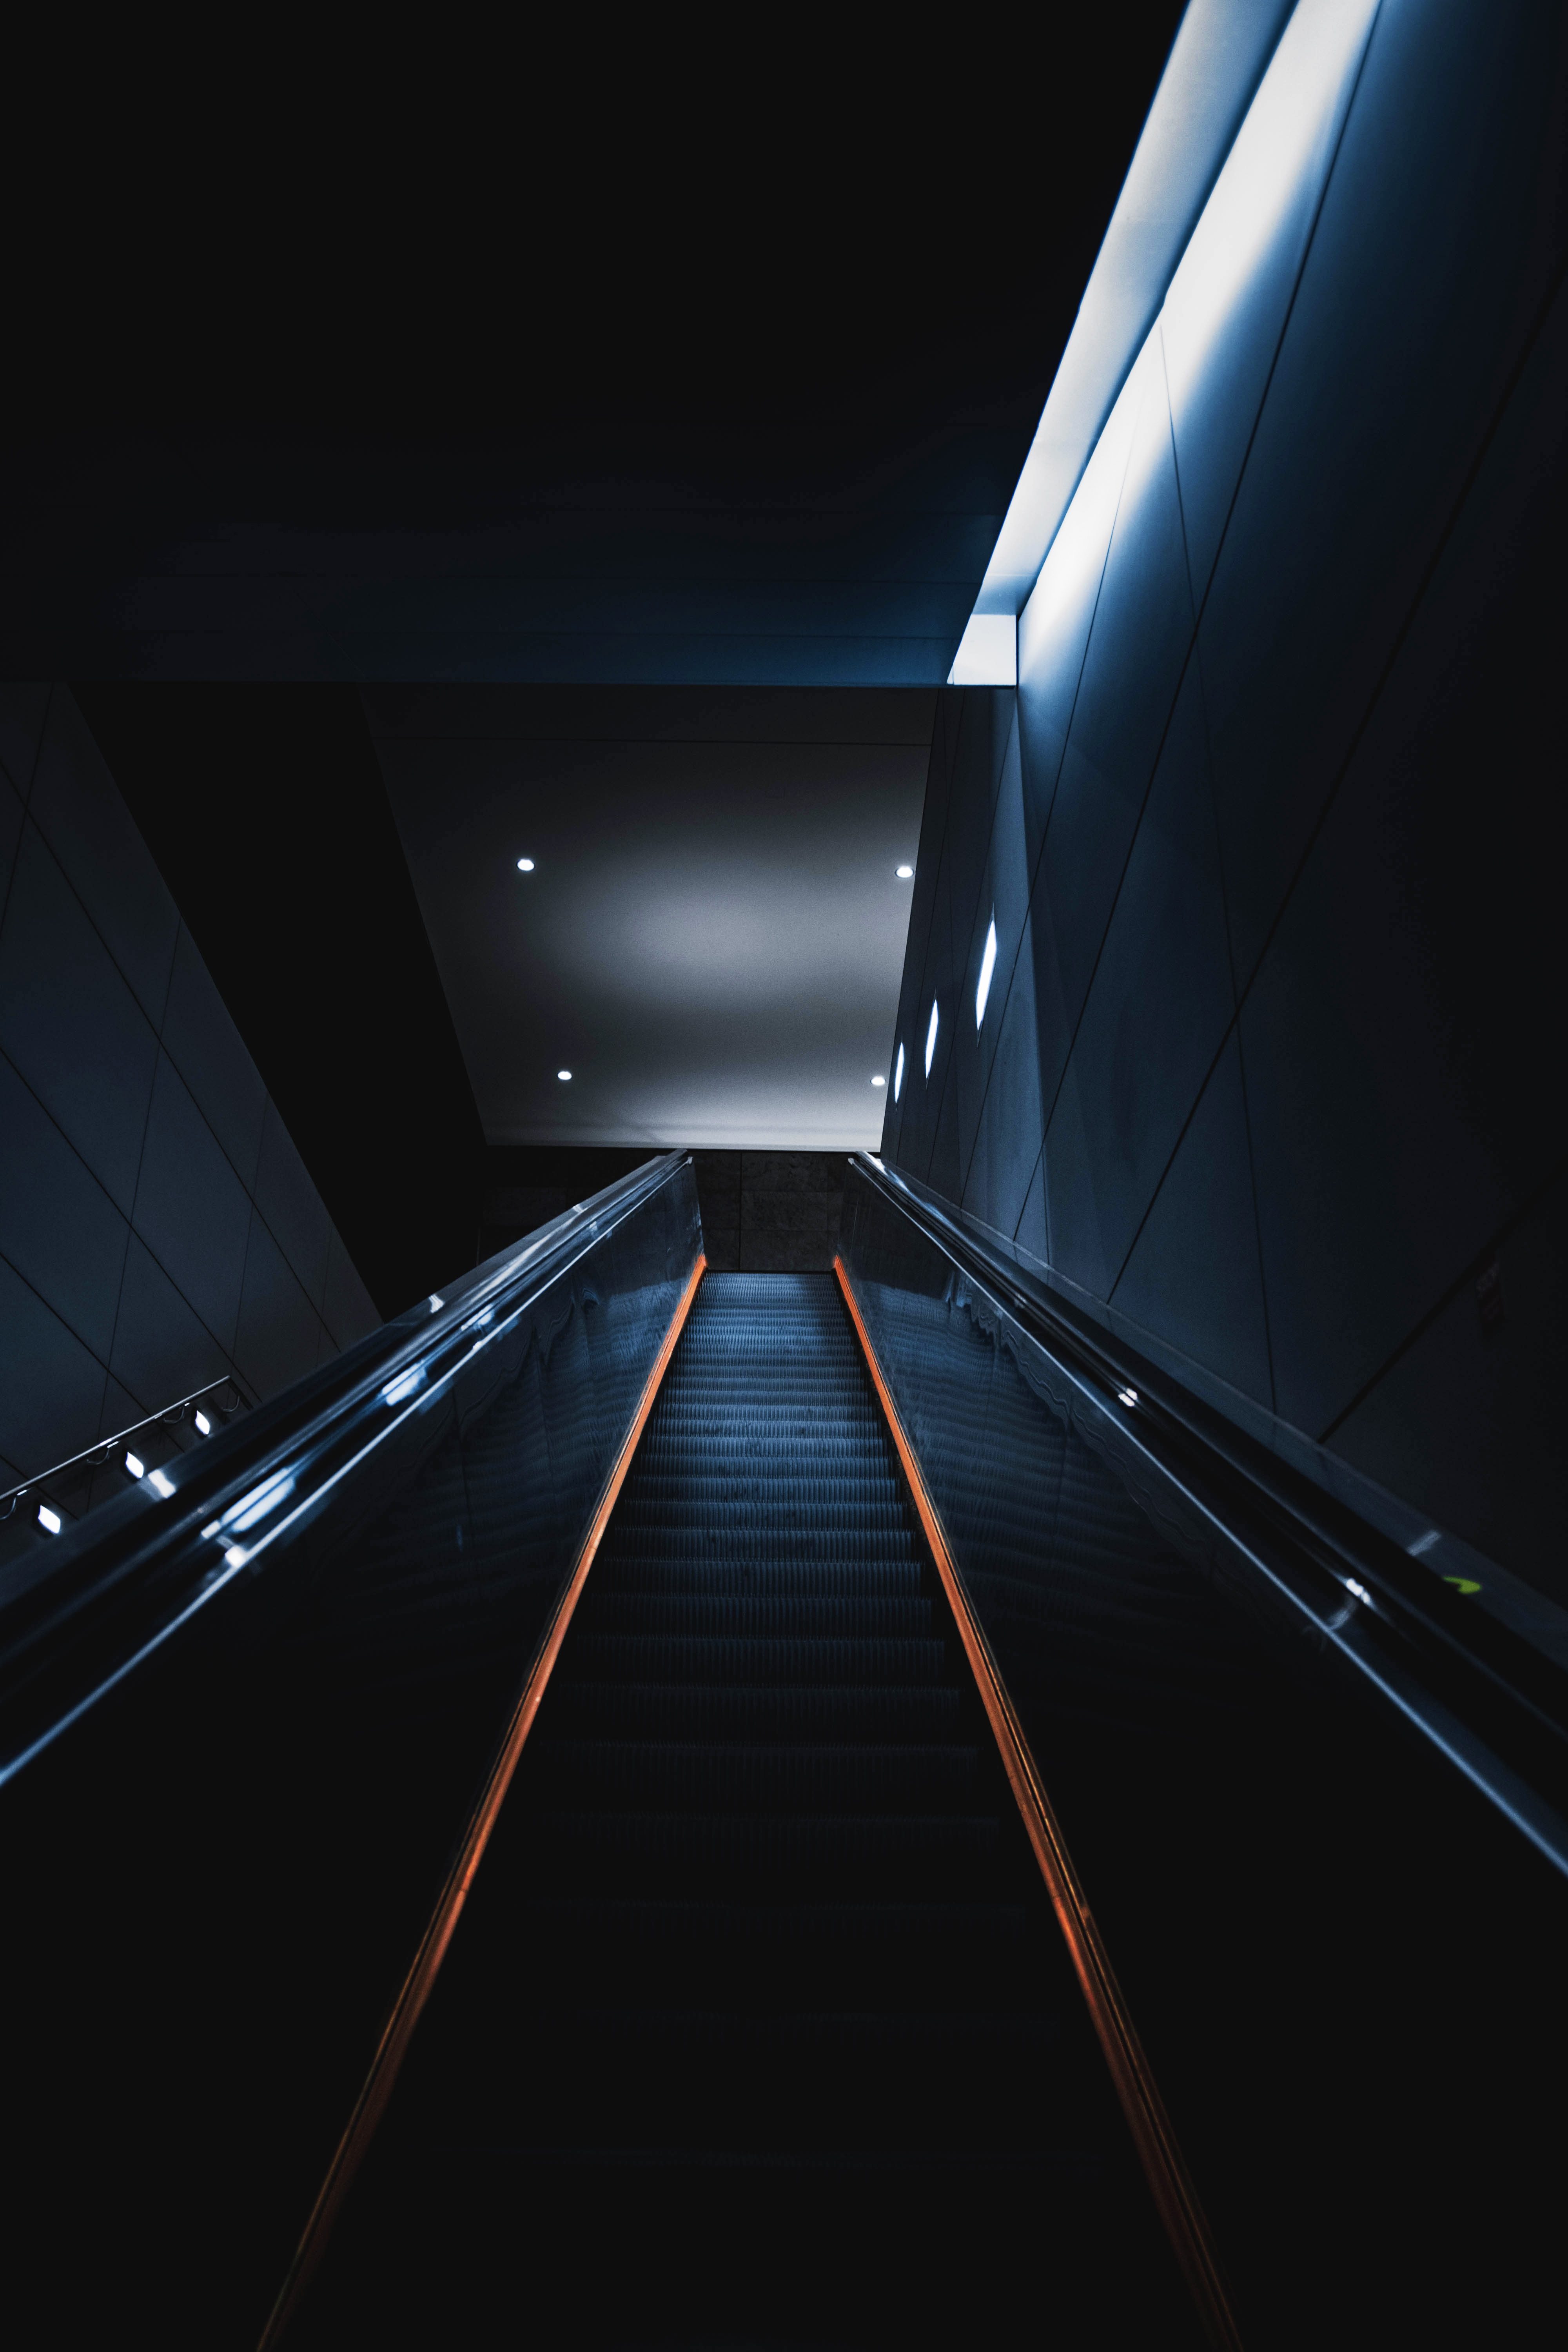 131917 Screensavers and Wallpapers Room for phone. Download Dark, Stairs, Ladder, Escalator, Design, Construction, Premises, Room pictures for free